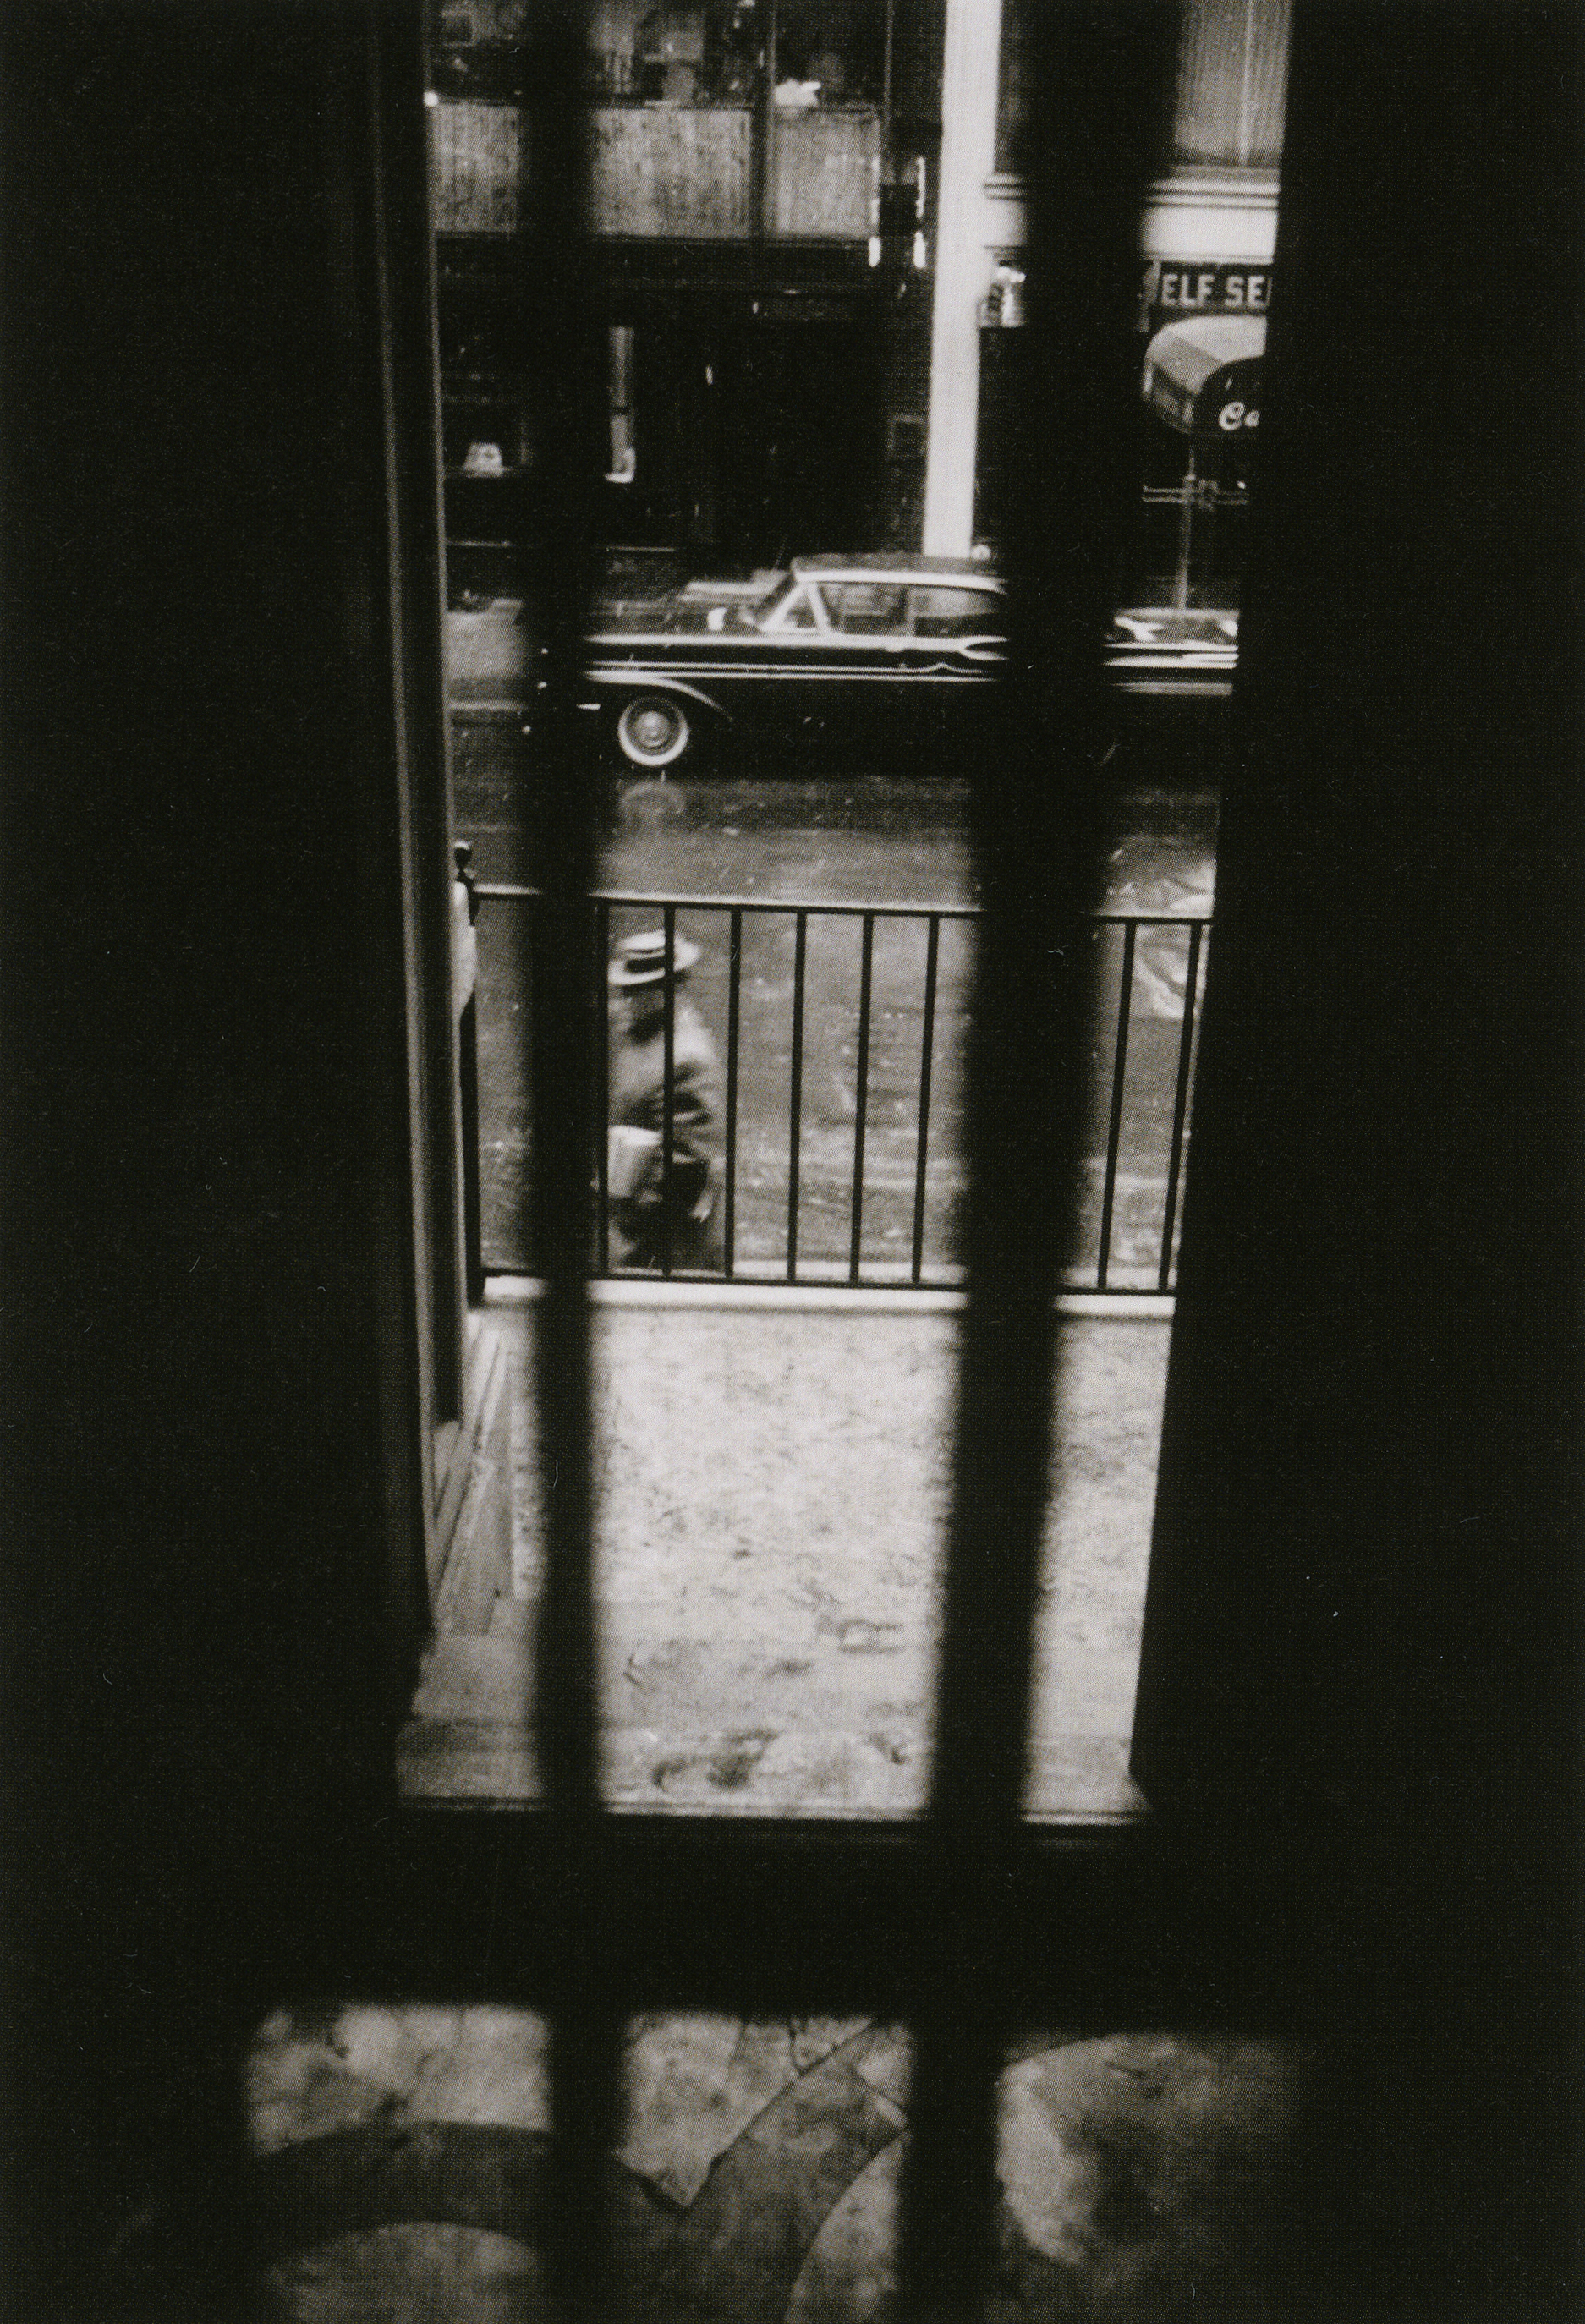 saul leiter_untitled, 1950s_p214